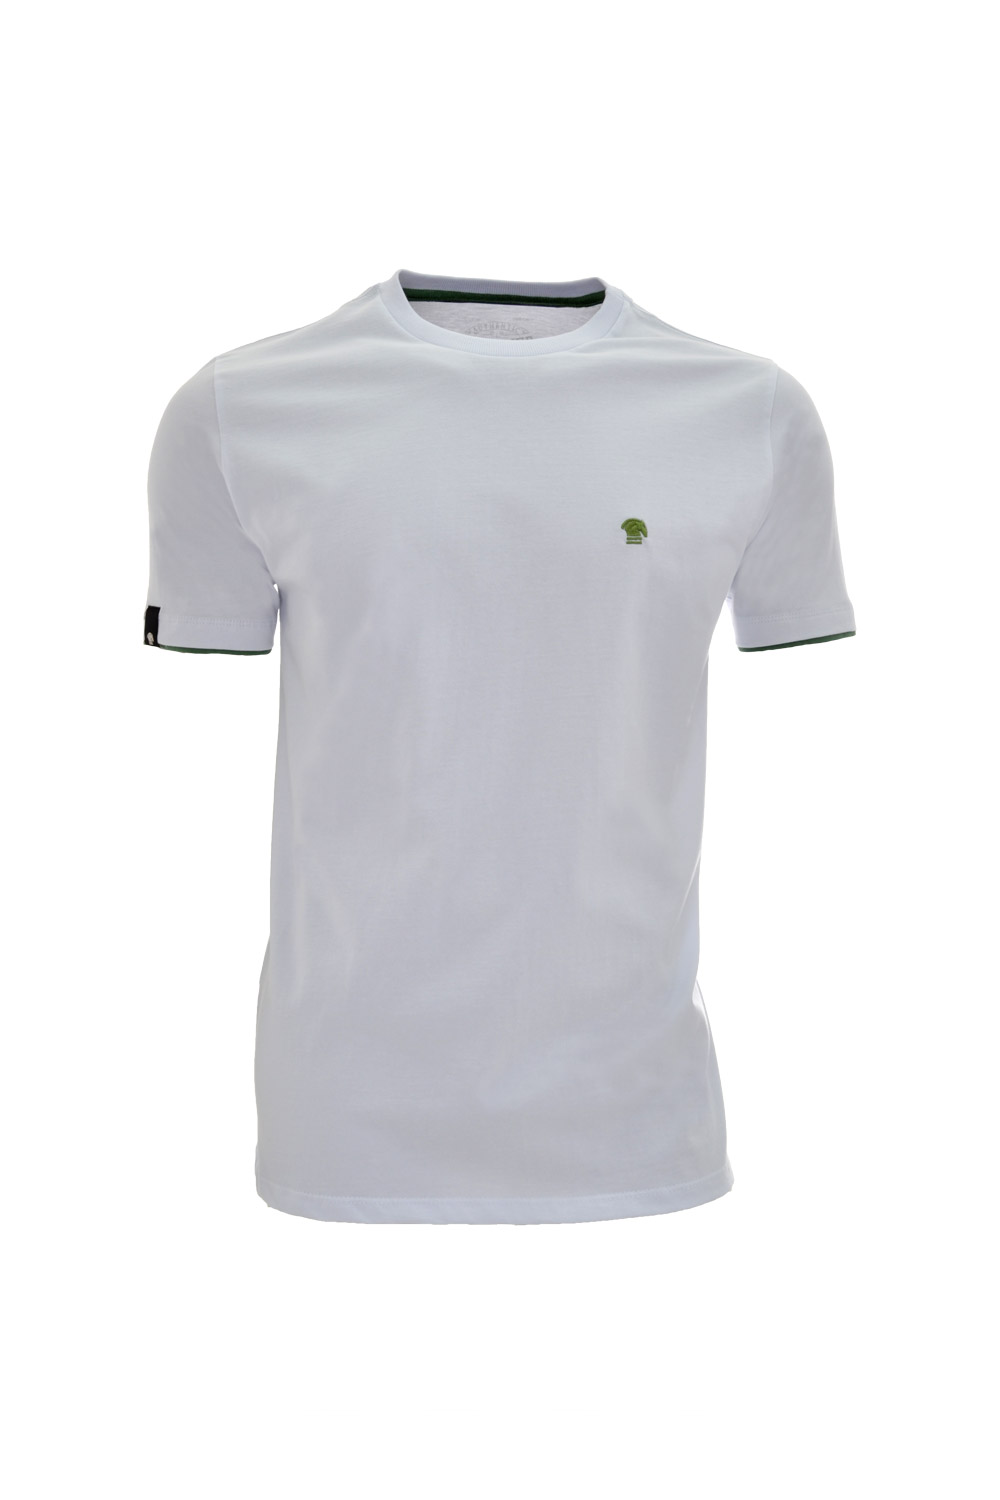 CAMISETA MC BLUES SUPER SLIM ALGODAO GOLA C LISO BRANCO